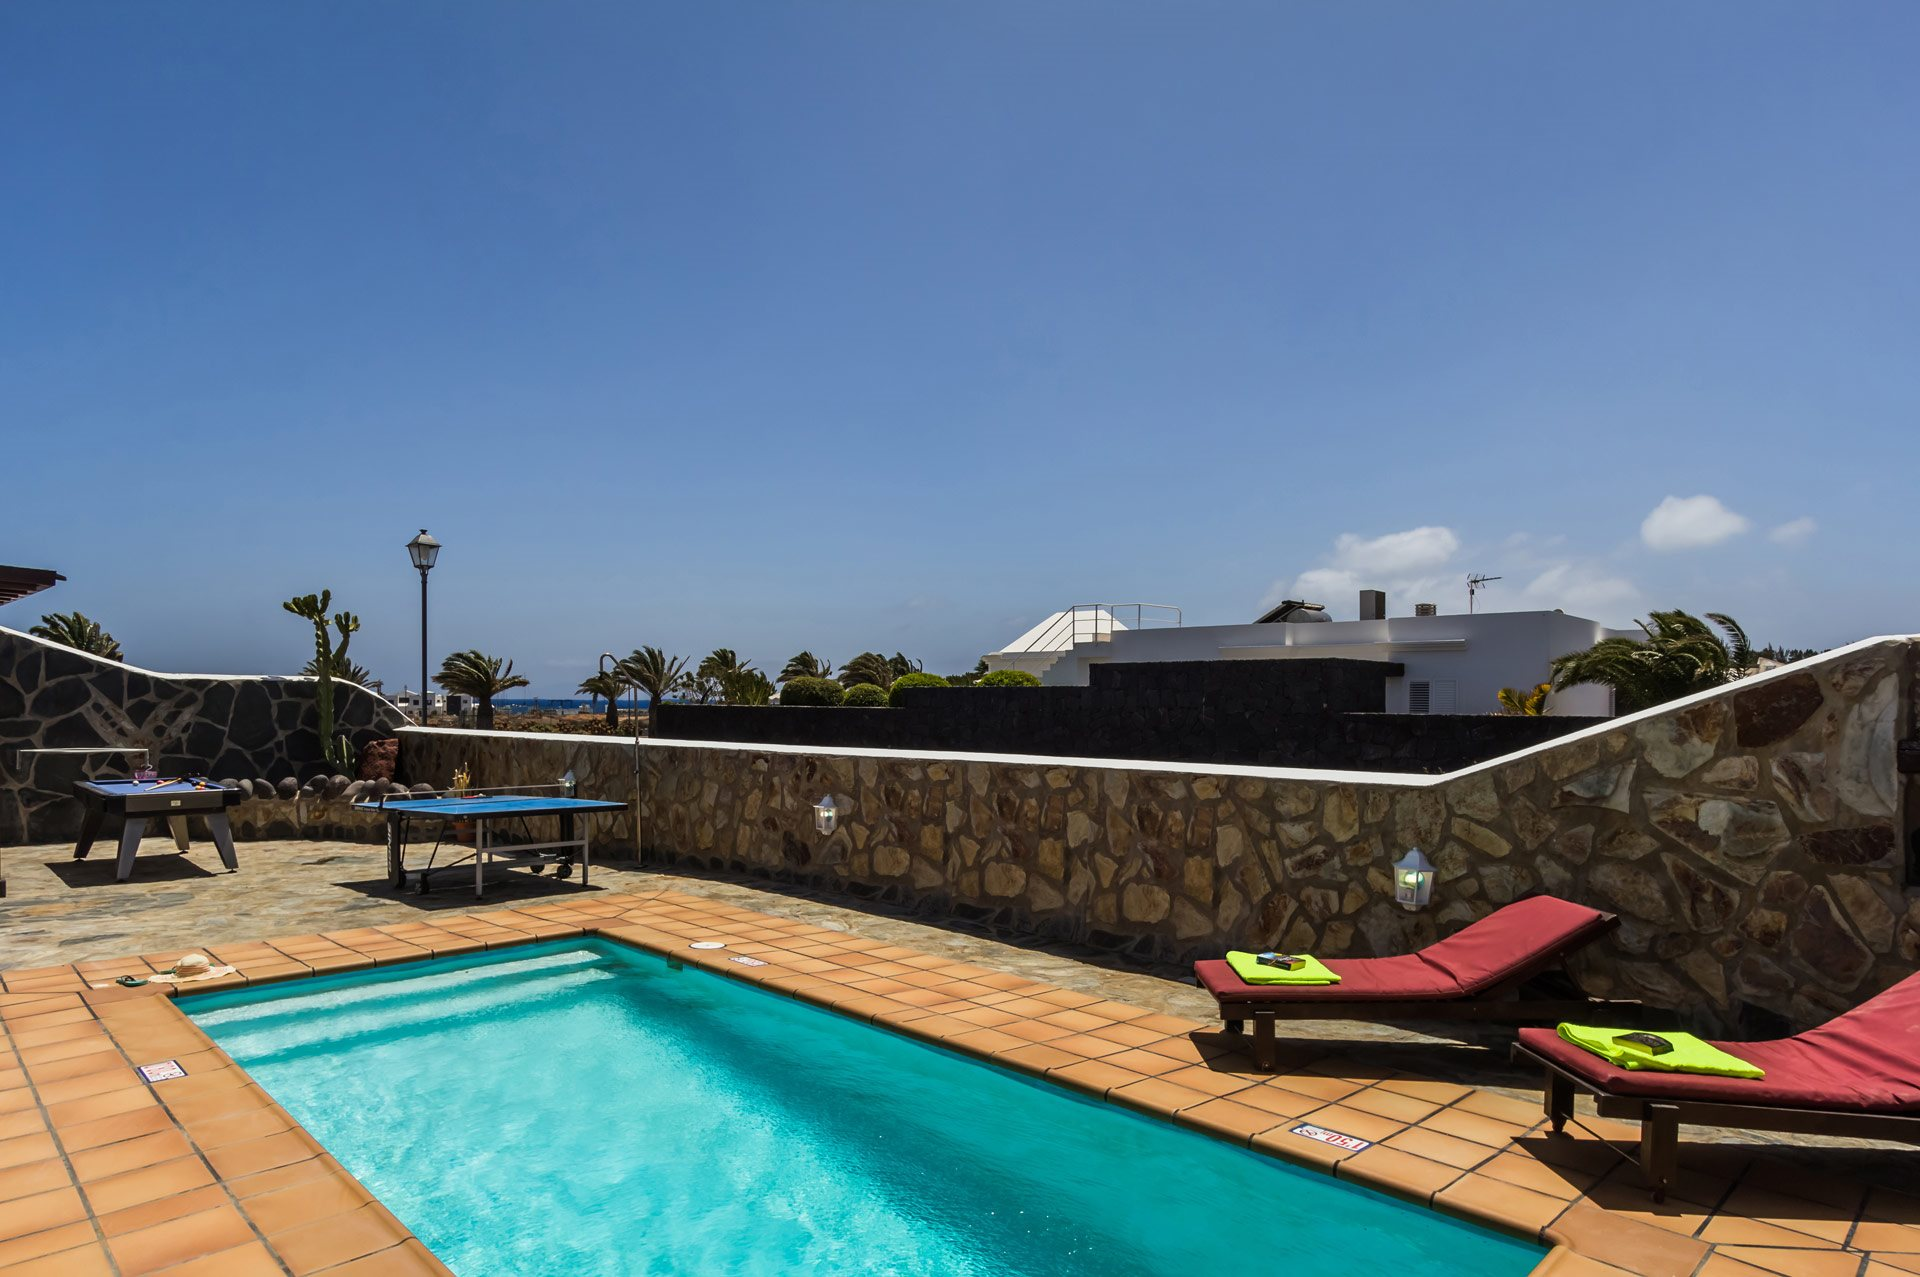 Villa Piedra In Playa Blanca Lanzarote Plus Swimming Pool Fuse Box